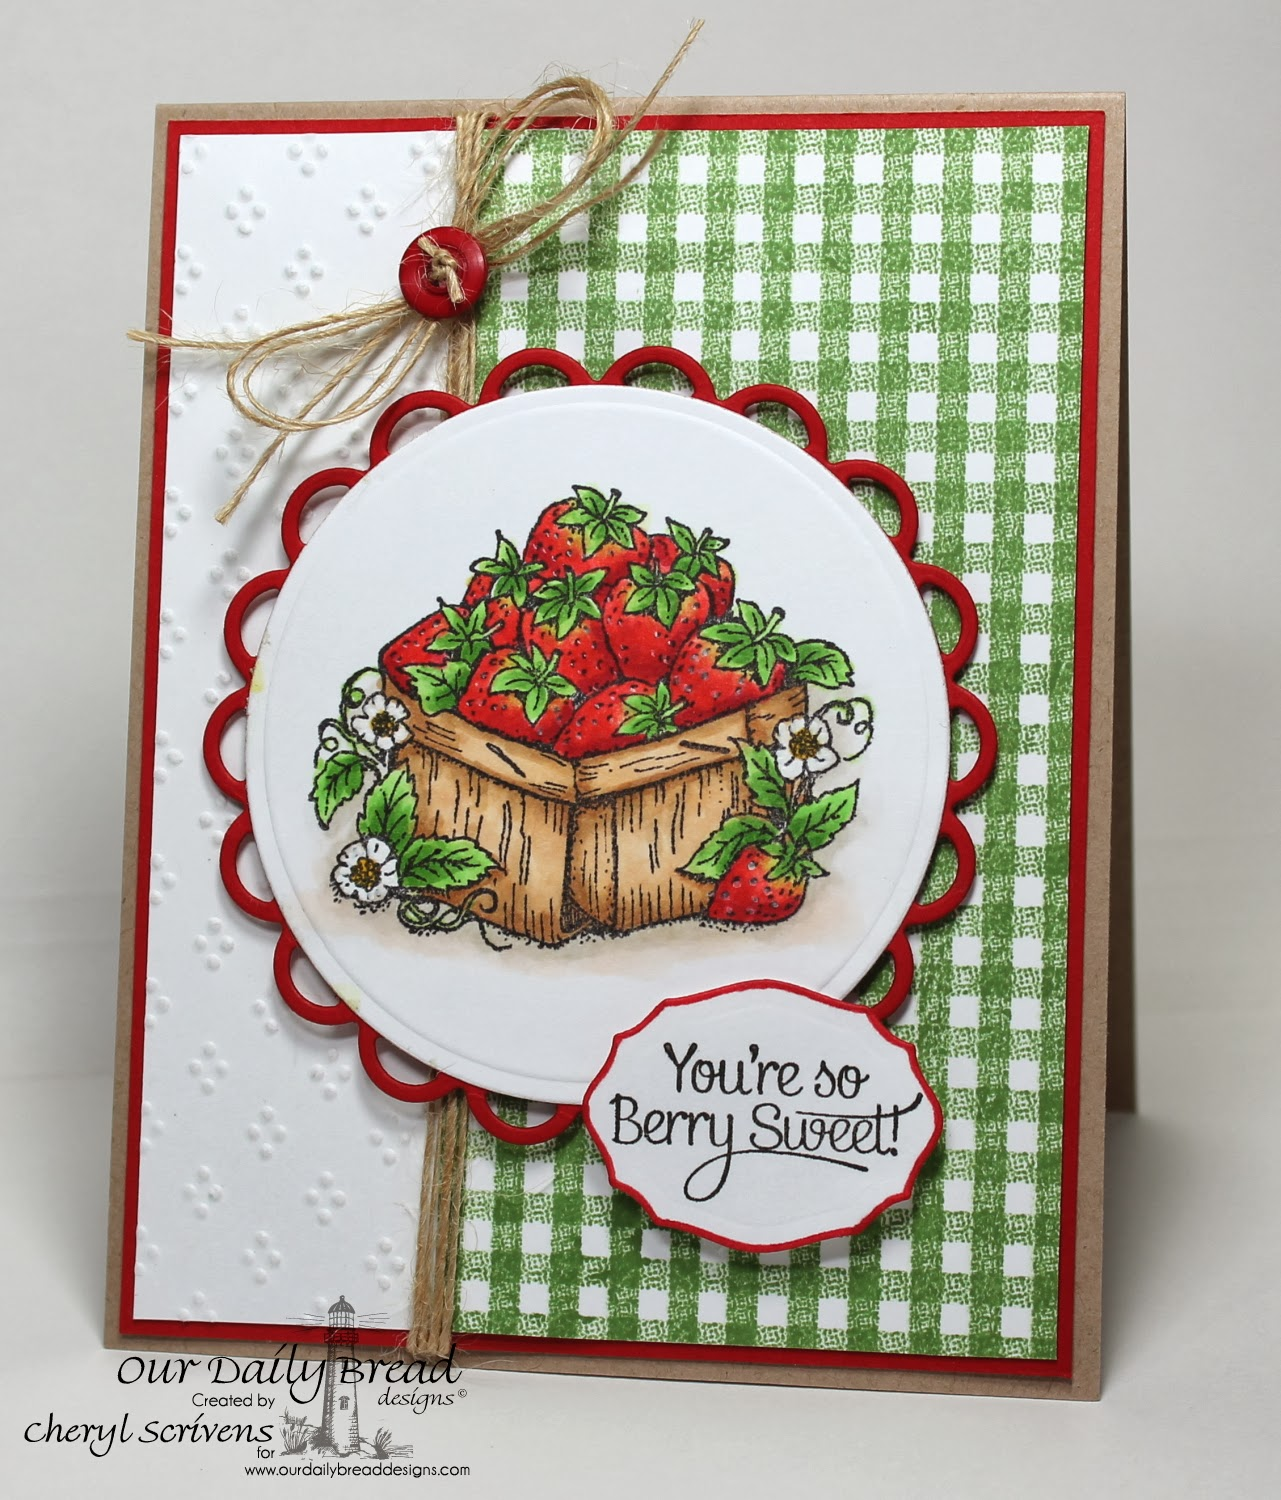 Our Daily Bread Designs, Strawberries, Gingham Background, ODBD Elegant Oval dies, CherylQuilts, Shining the Light Challenge, Designed by Cheryl Scrivens